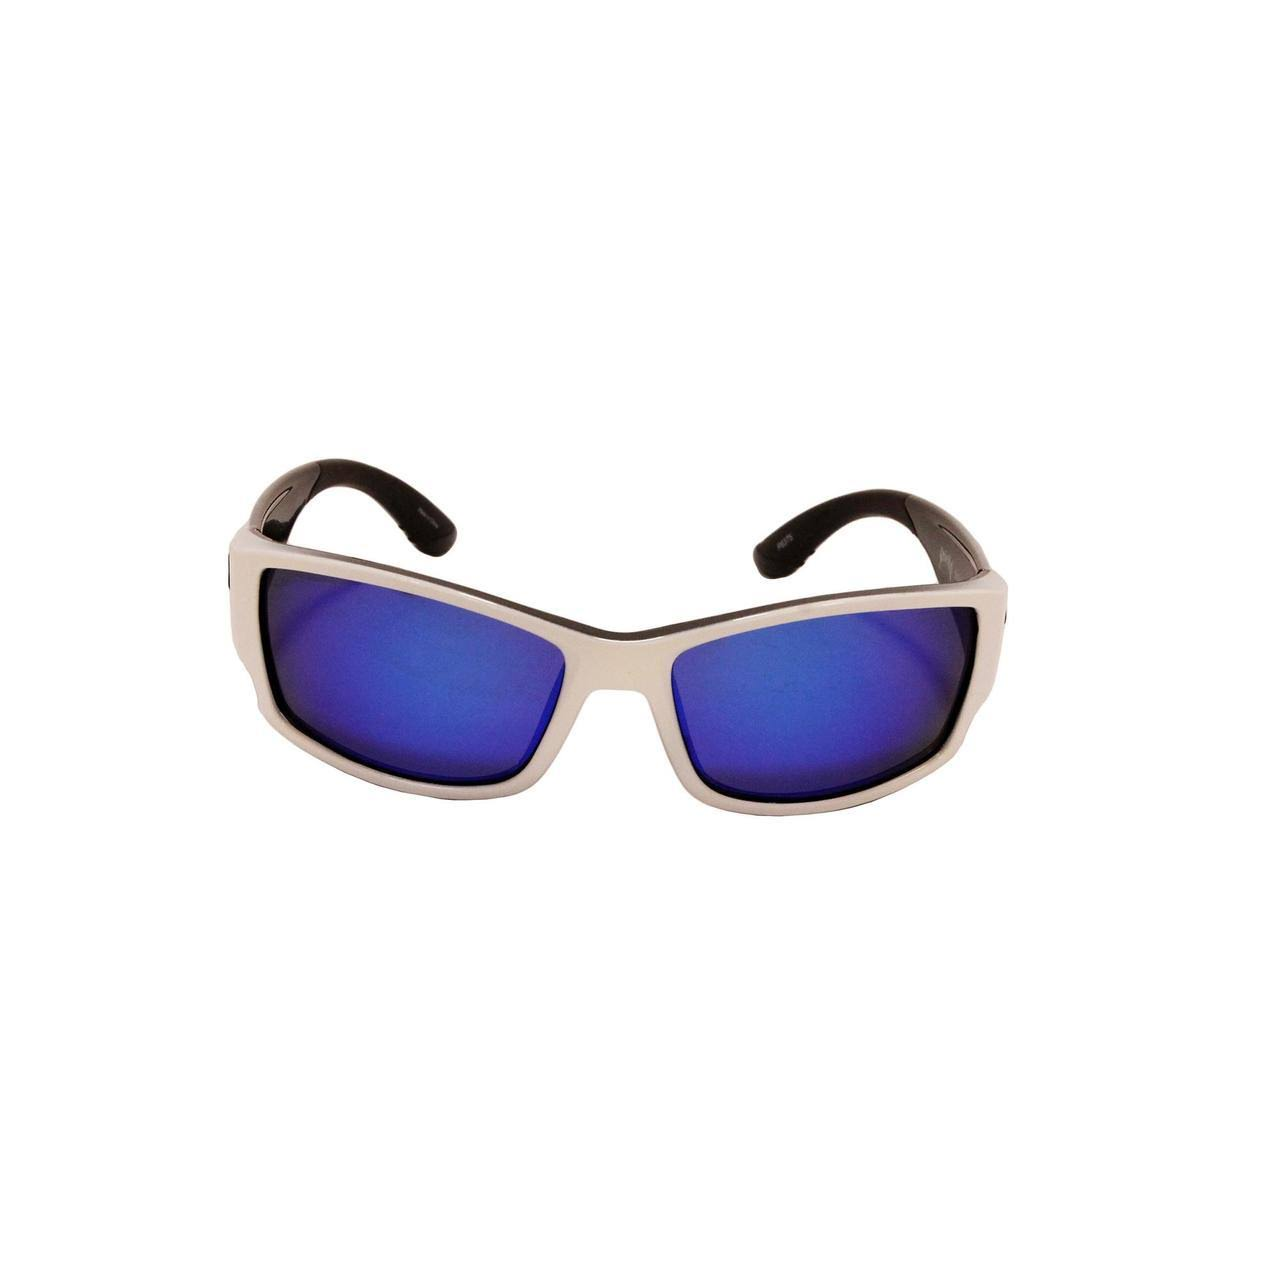 Strike King SK Plus Ouachita Sunglasses - Shiny White Frame, Blue Mirror Lens